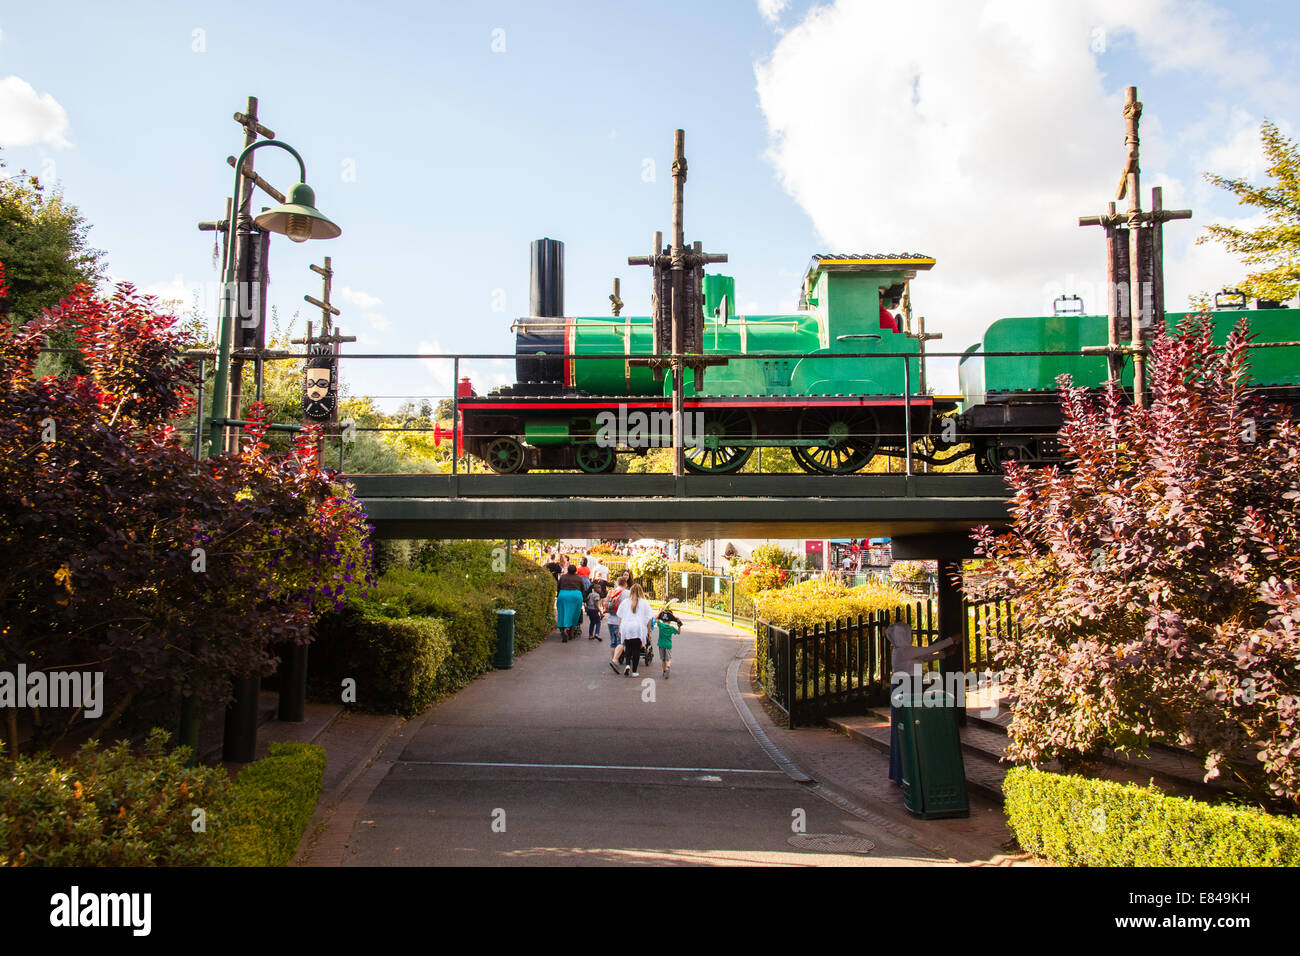 Orient Expedition steam train ride at Legoland Windsor, England - Stock Image